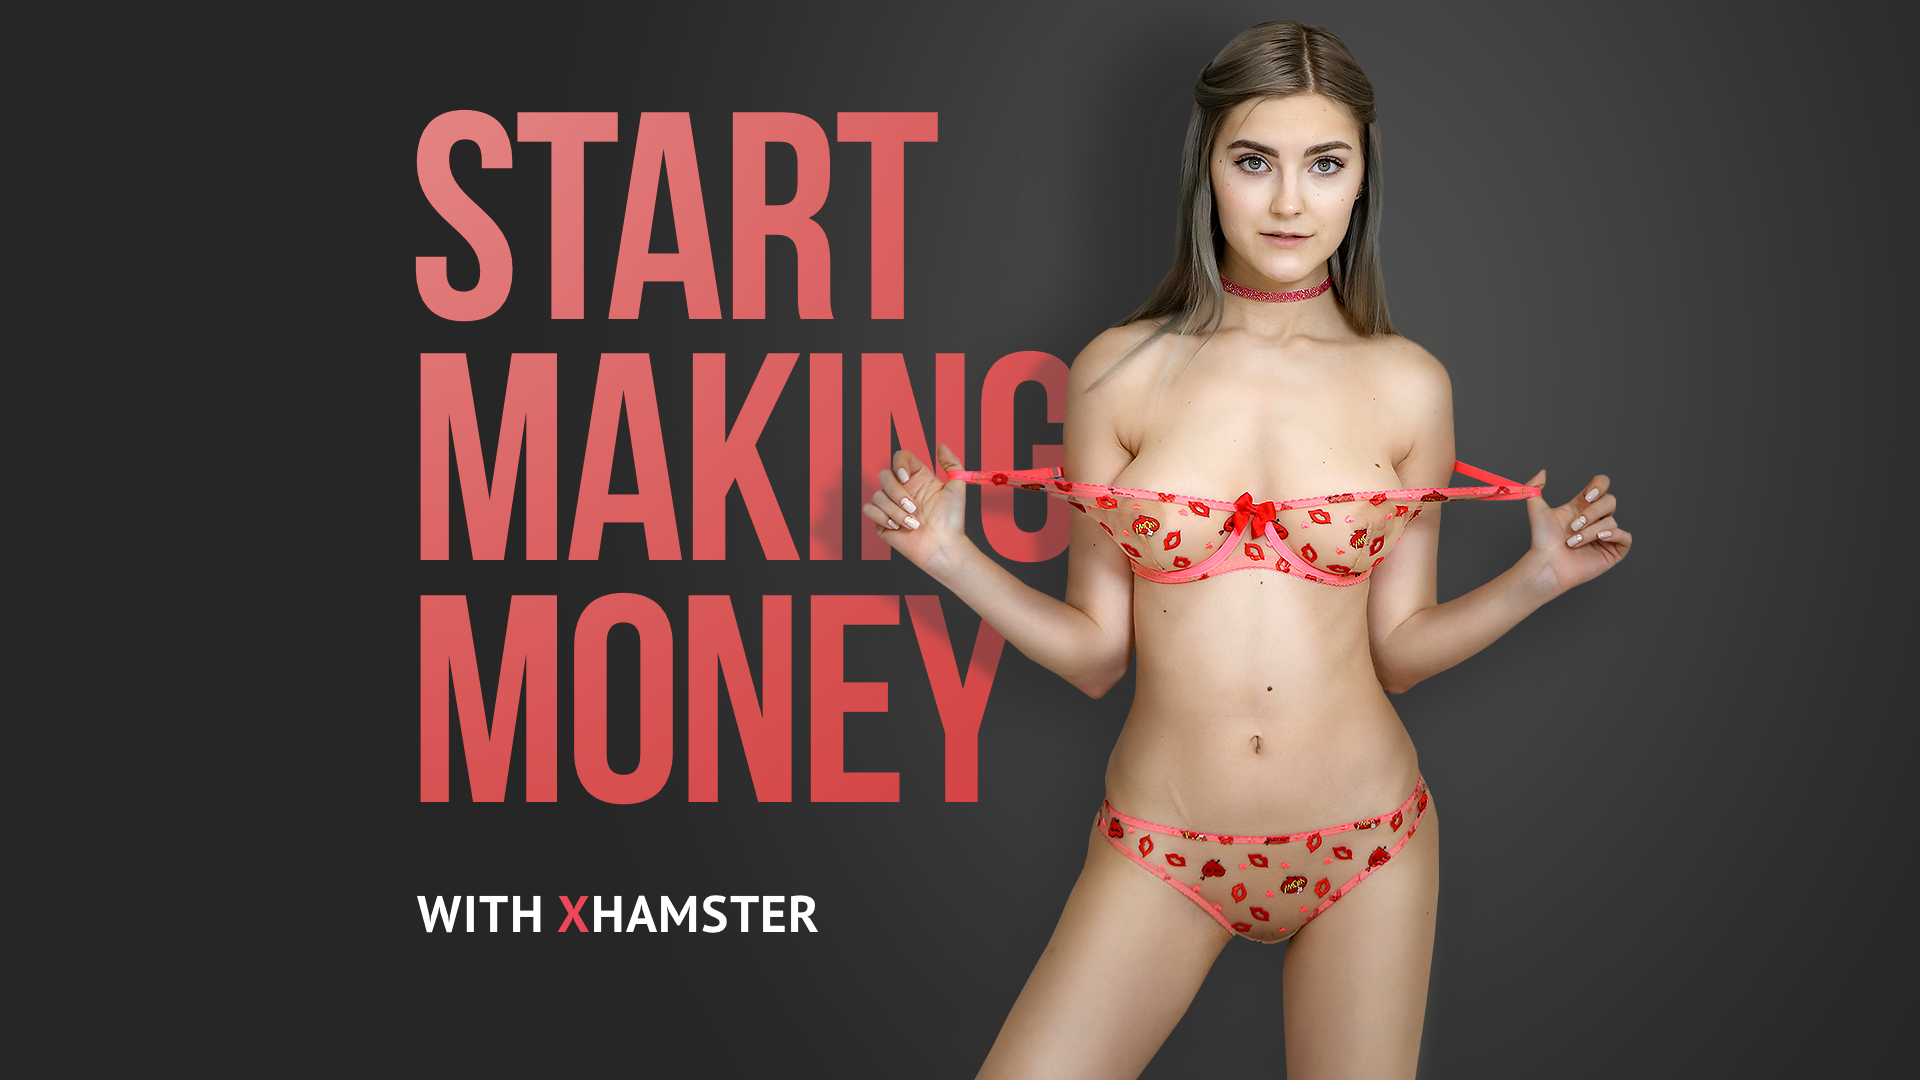 HOW TO EARN WITH XHAMSTER